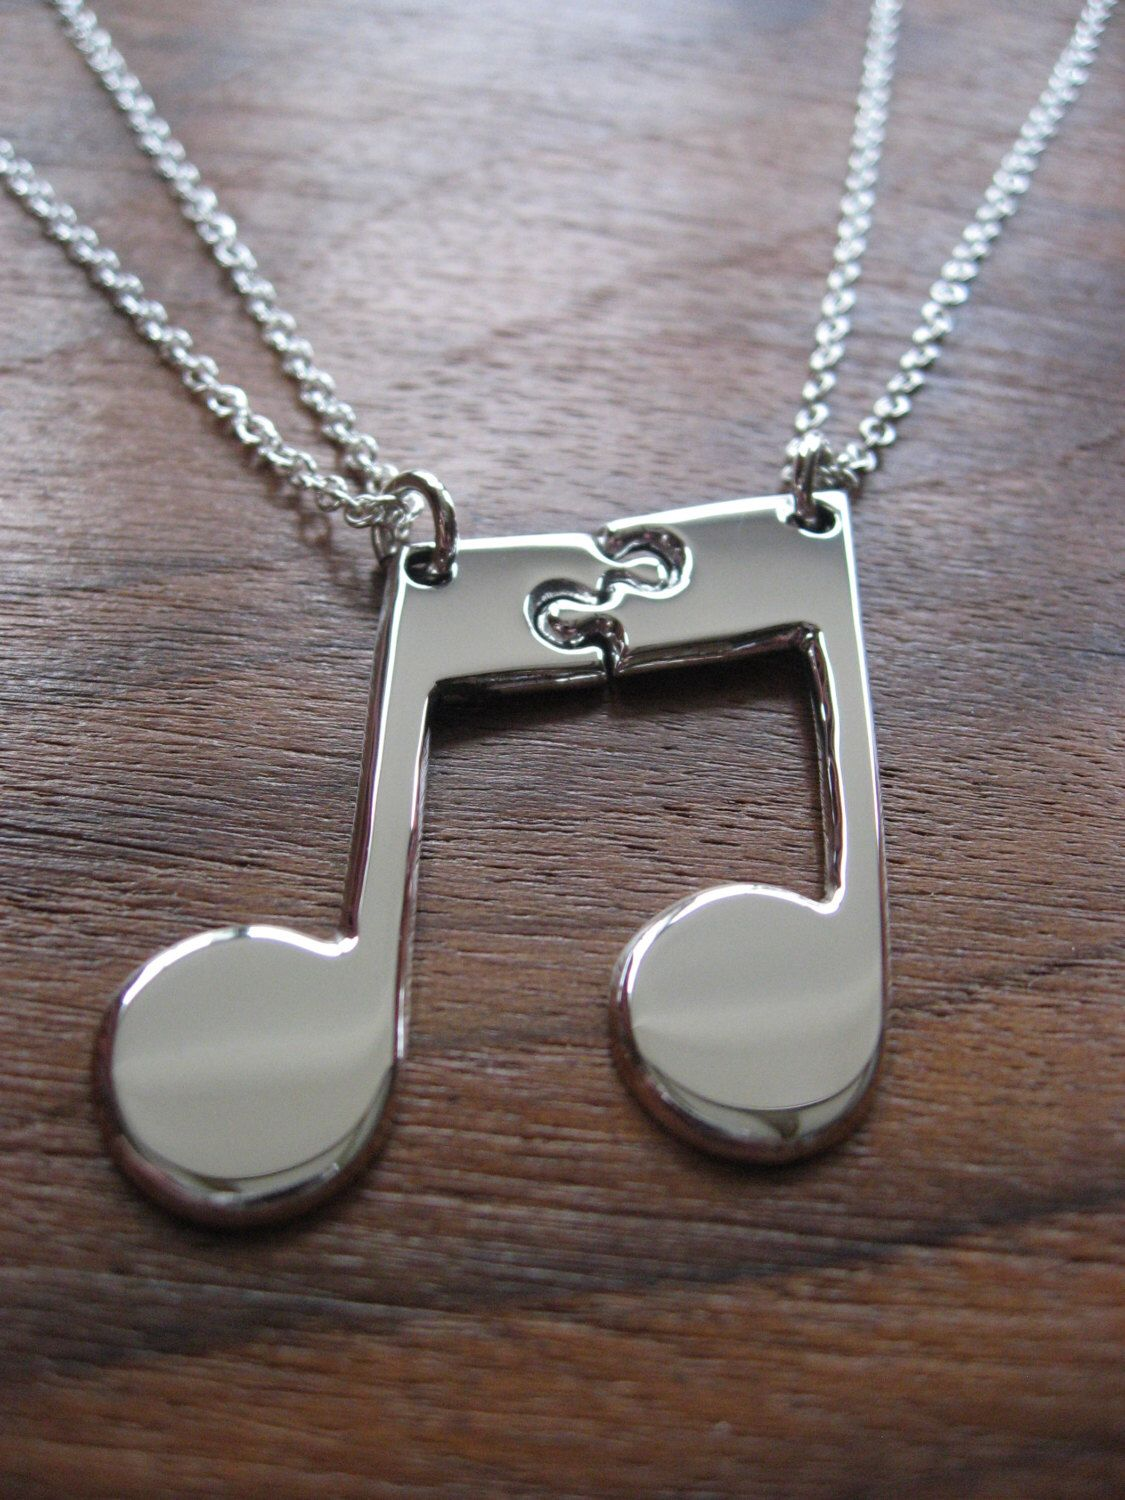 Two best friend necklaces silver music note pendants best friend music note pendants necklaces by gorjessjewellery on etsy httpsetsylisting182199862best friend music note pendants aloadofball Choice Image